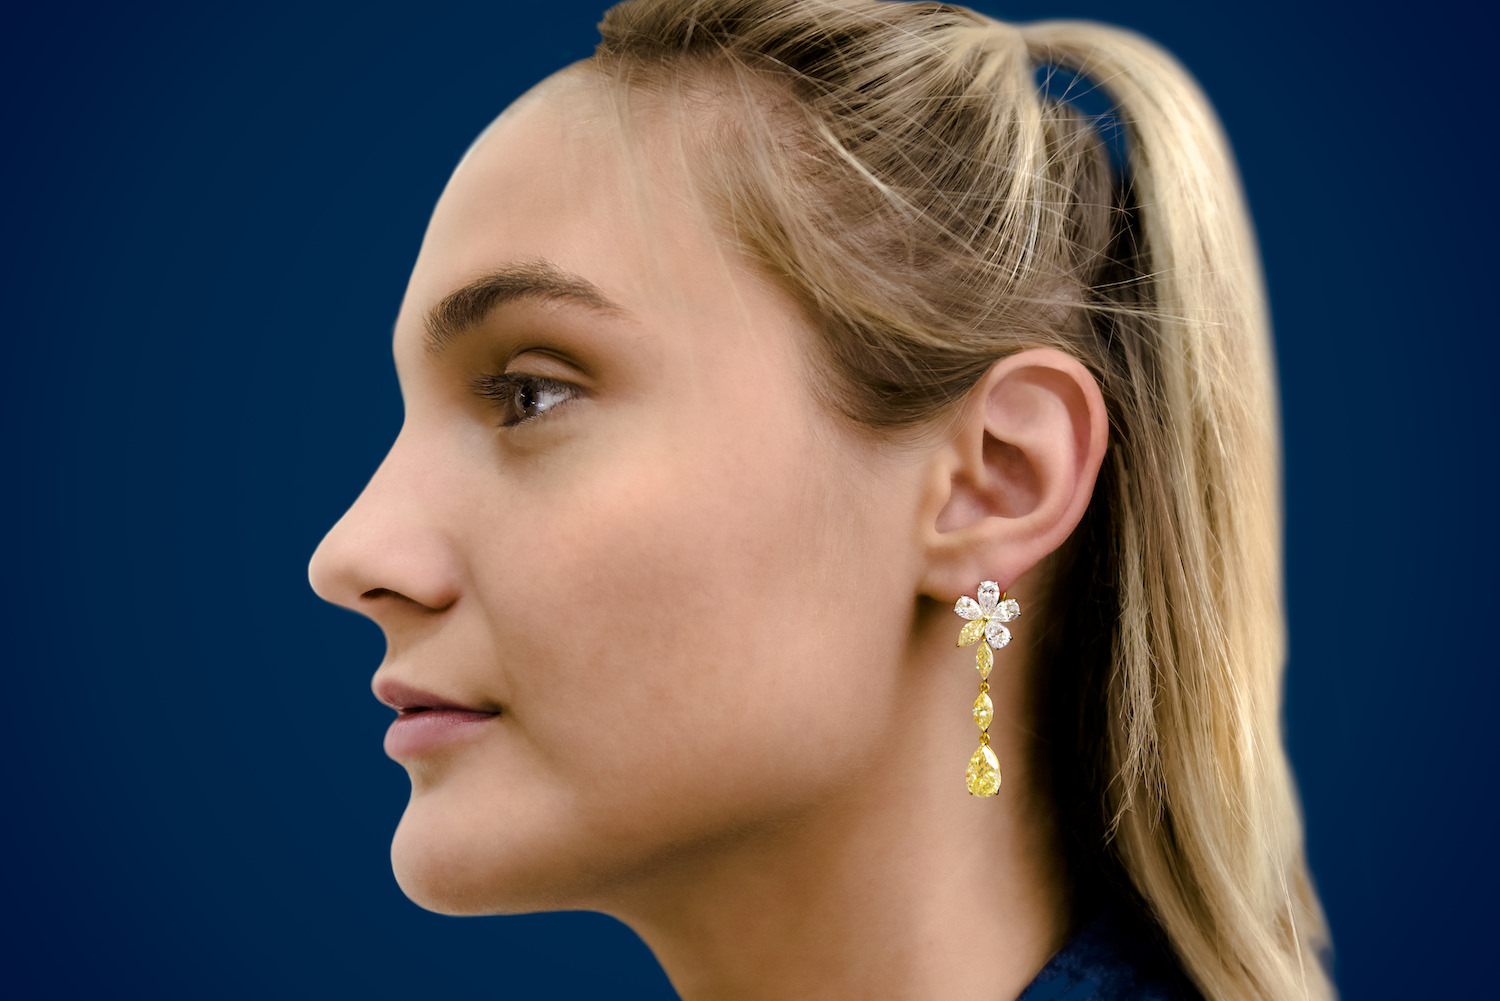 Commercial, Jewelry, Earring, Female Profile